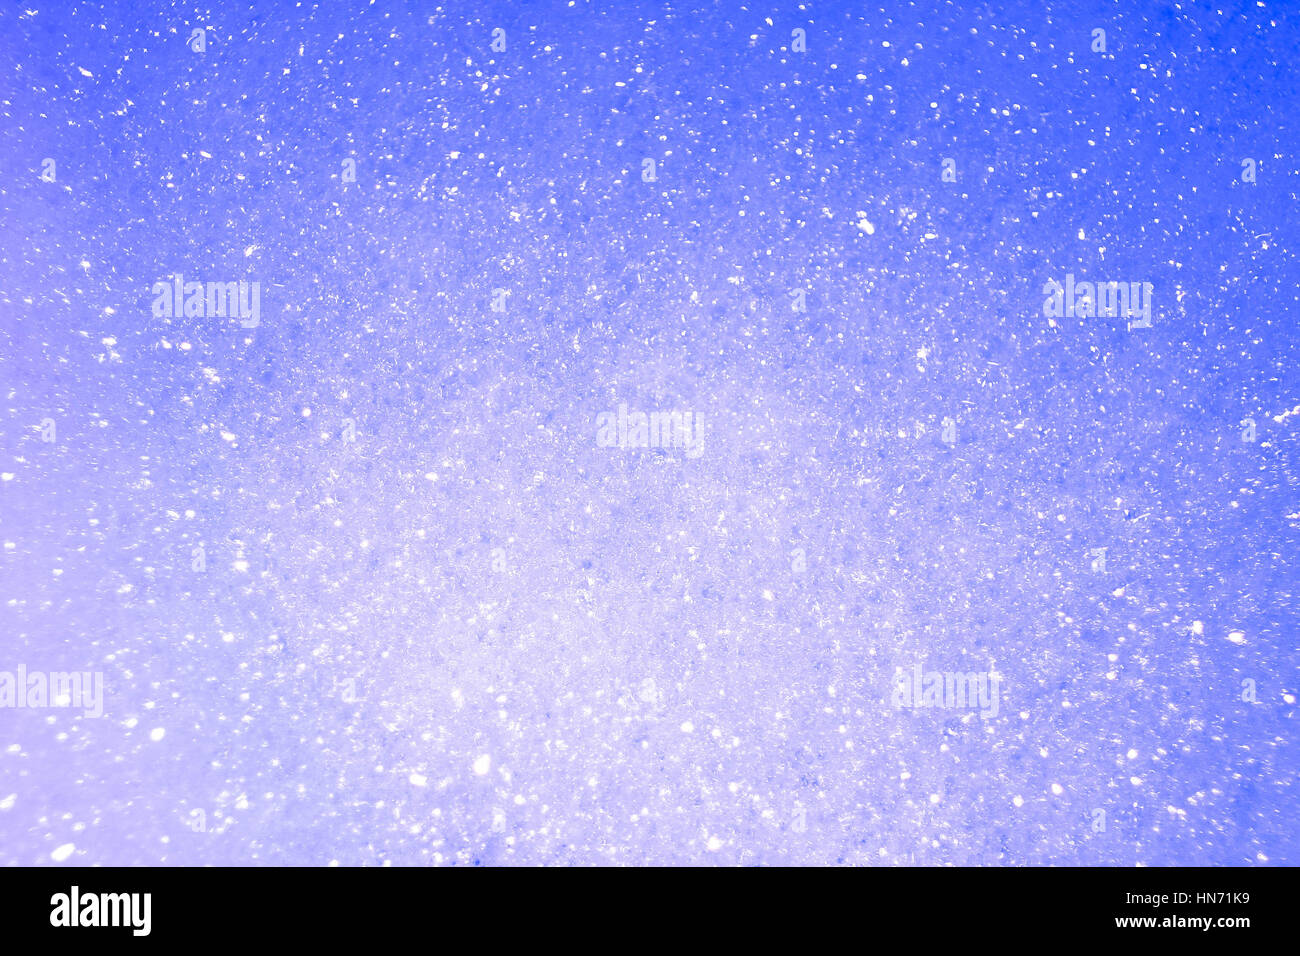 Shimmer background for commercial use presentations - Stock Image